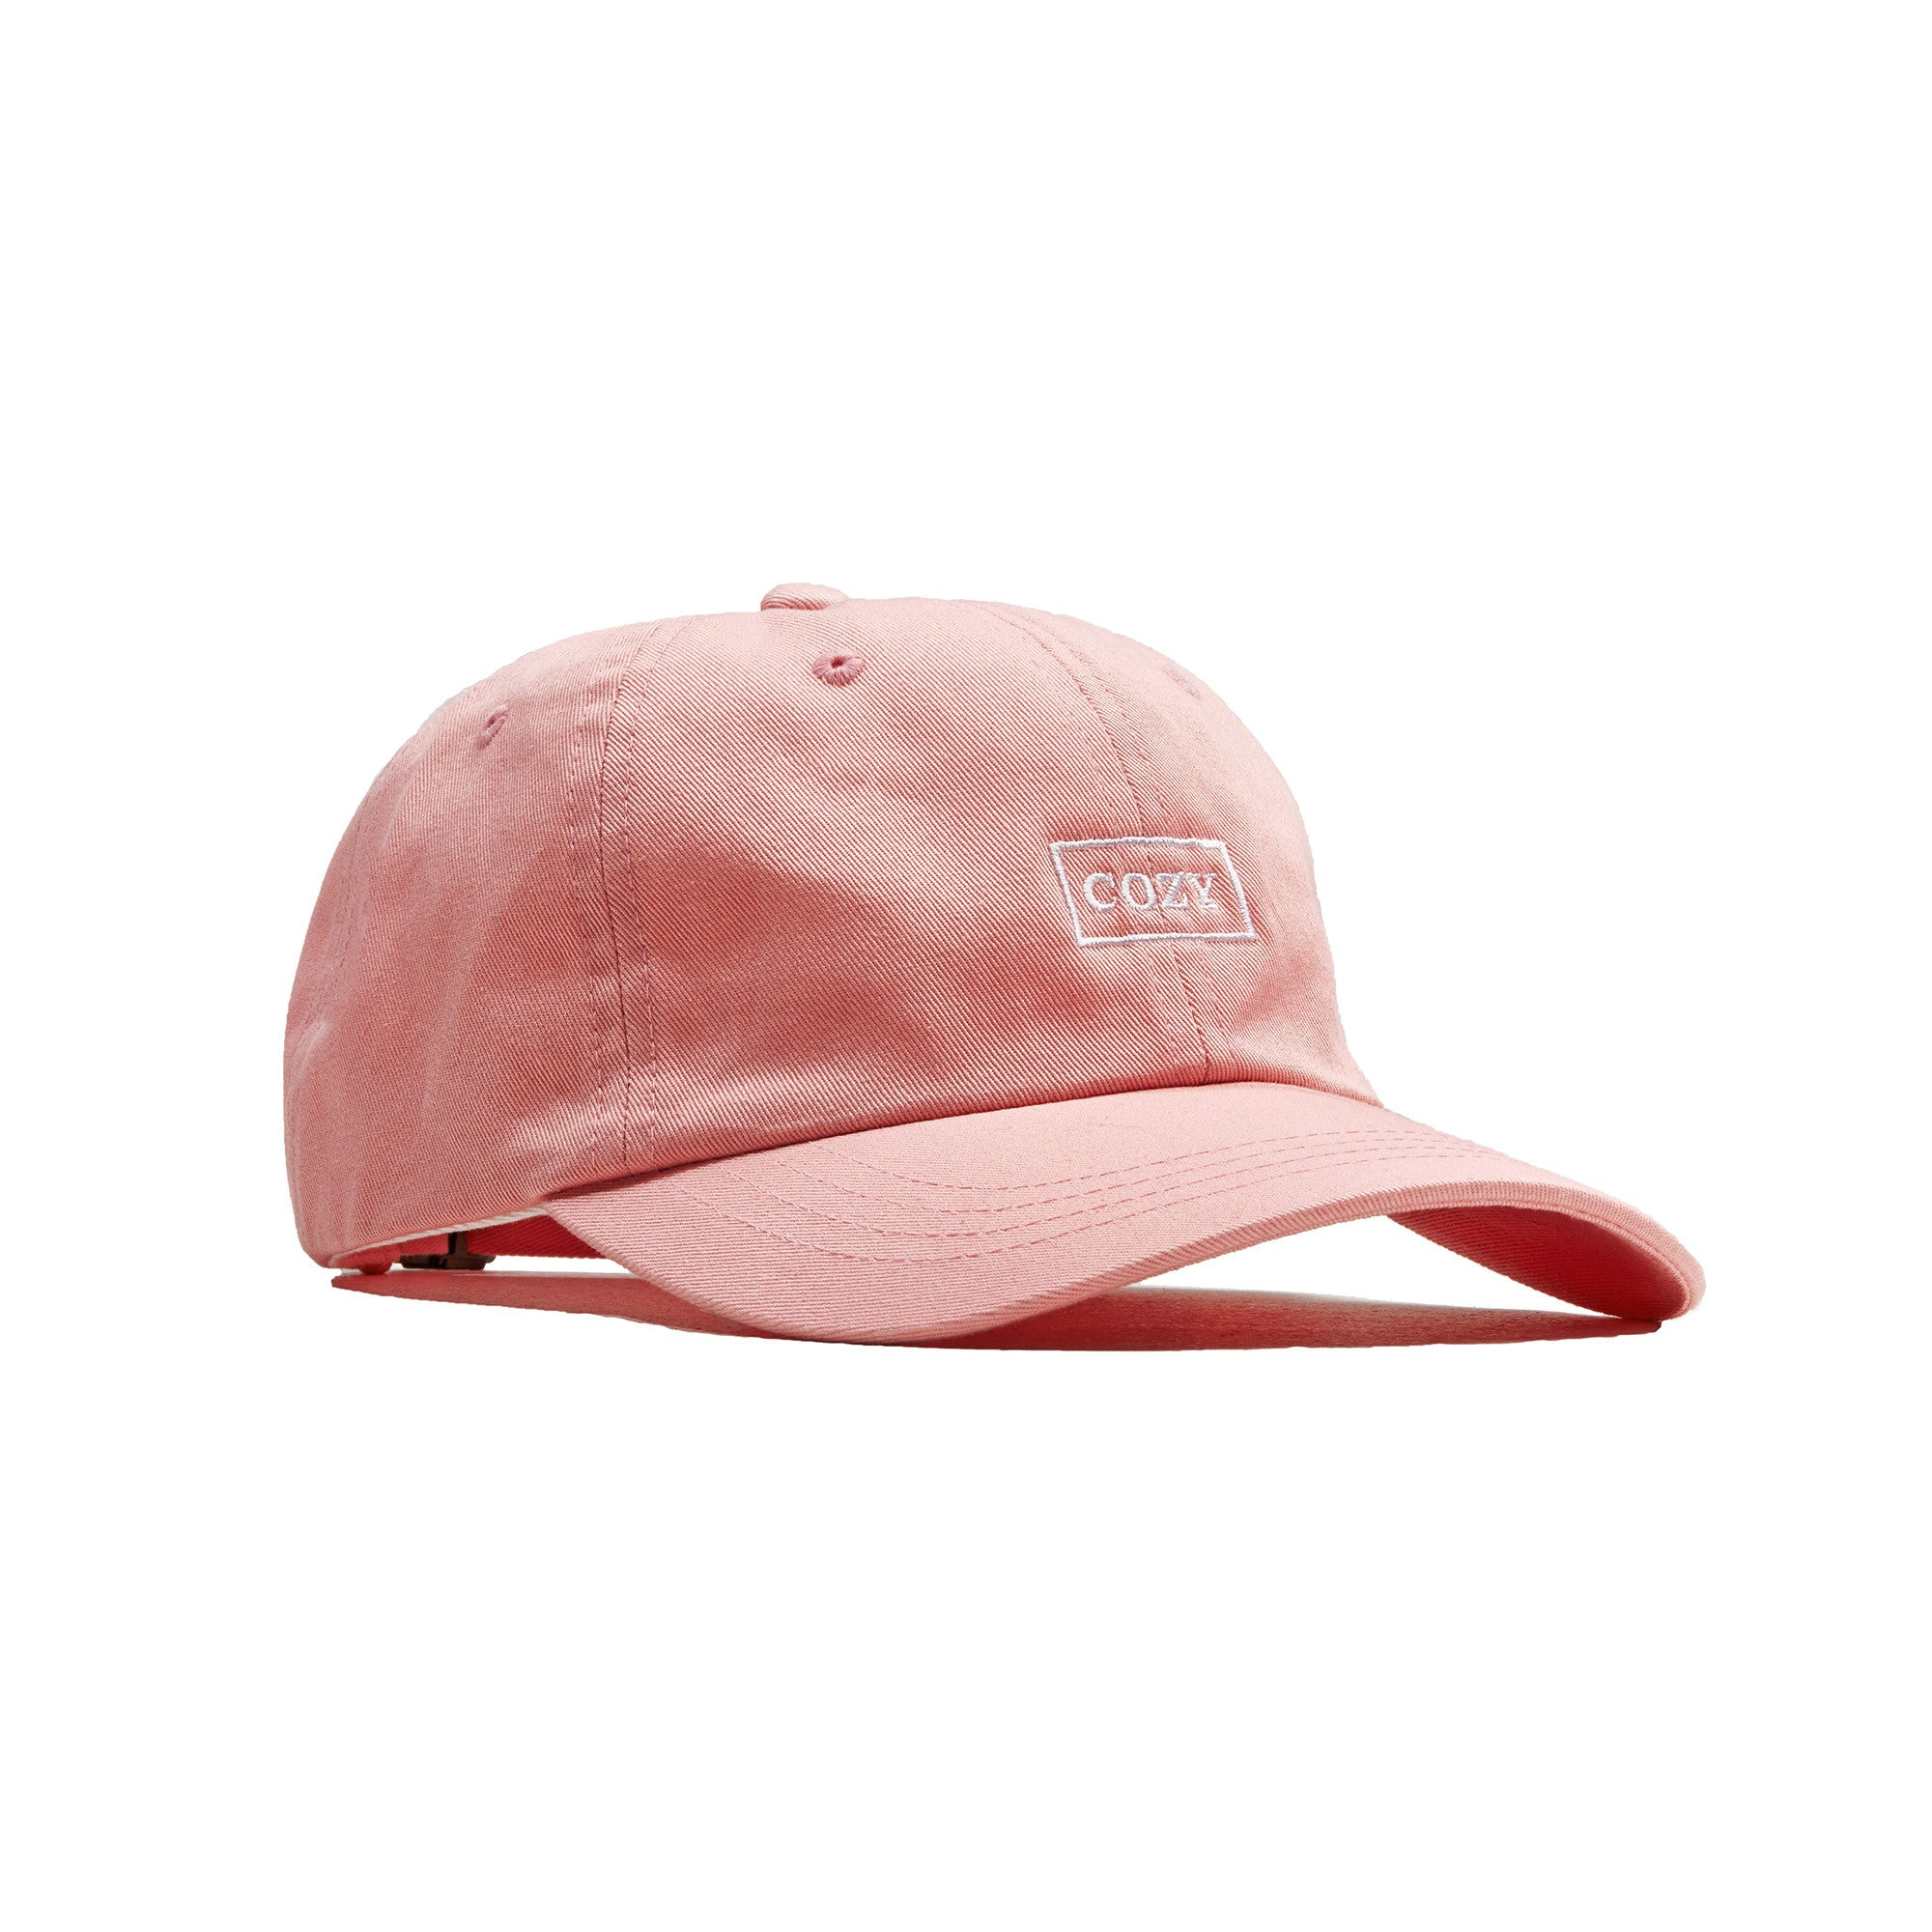 Cozy Box Cap - Pink